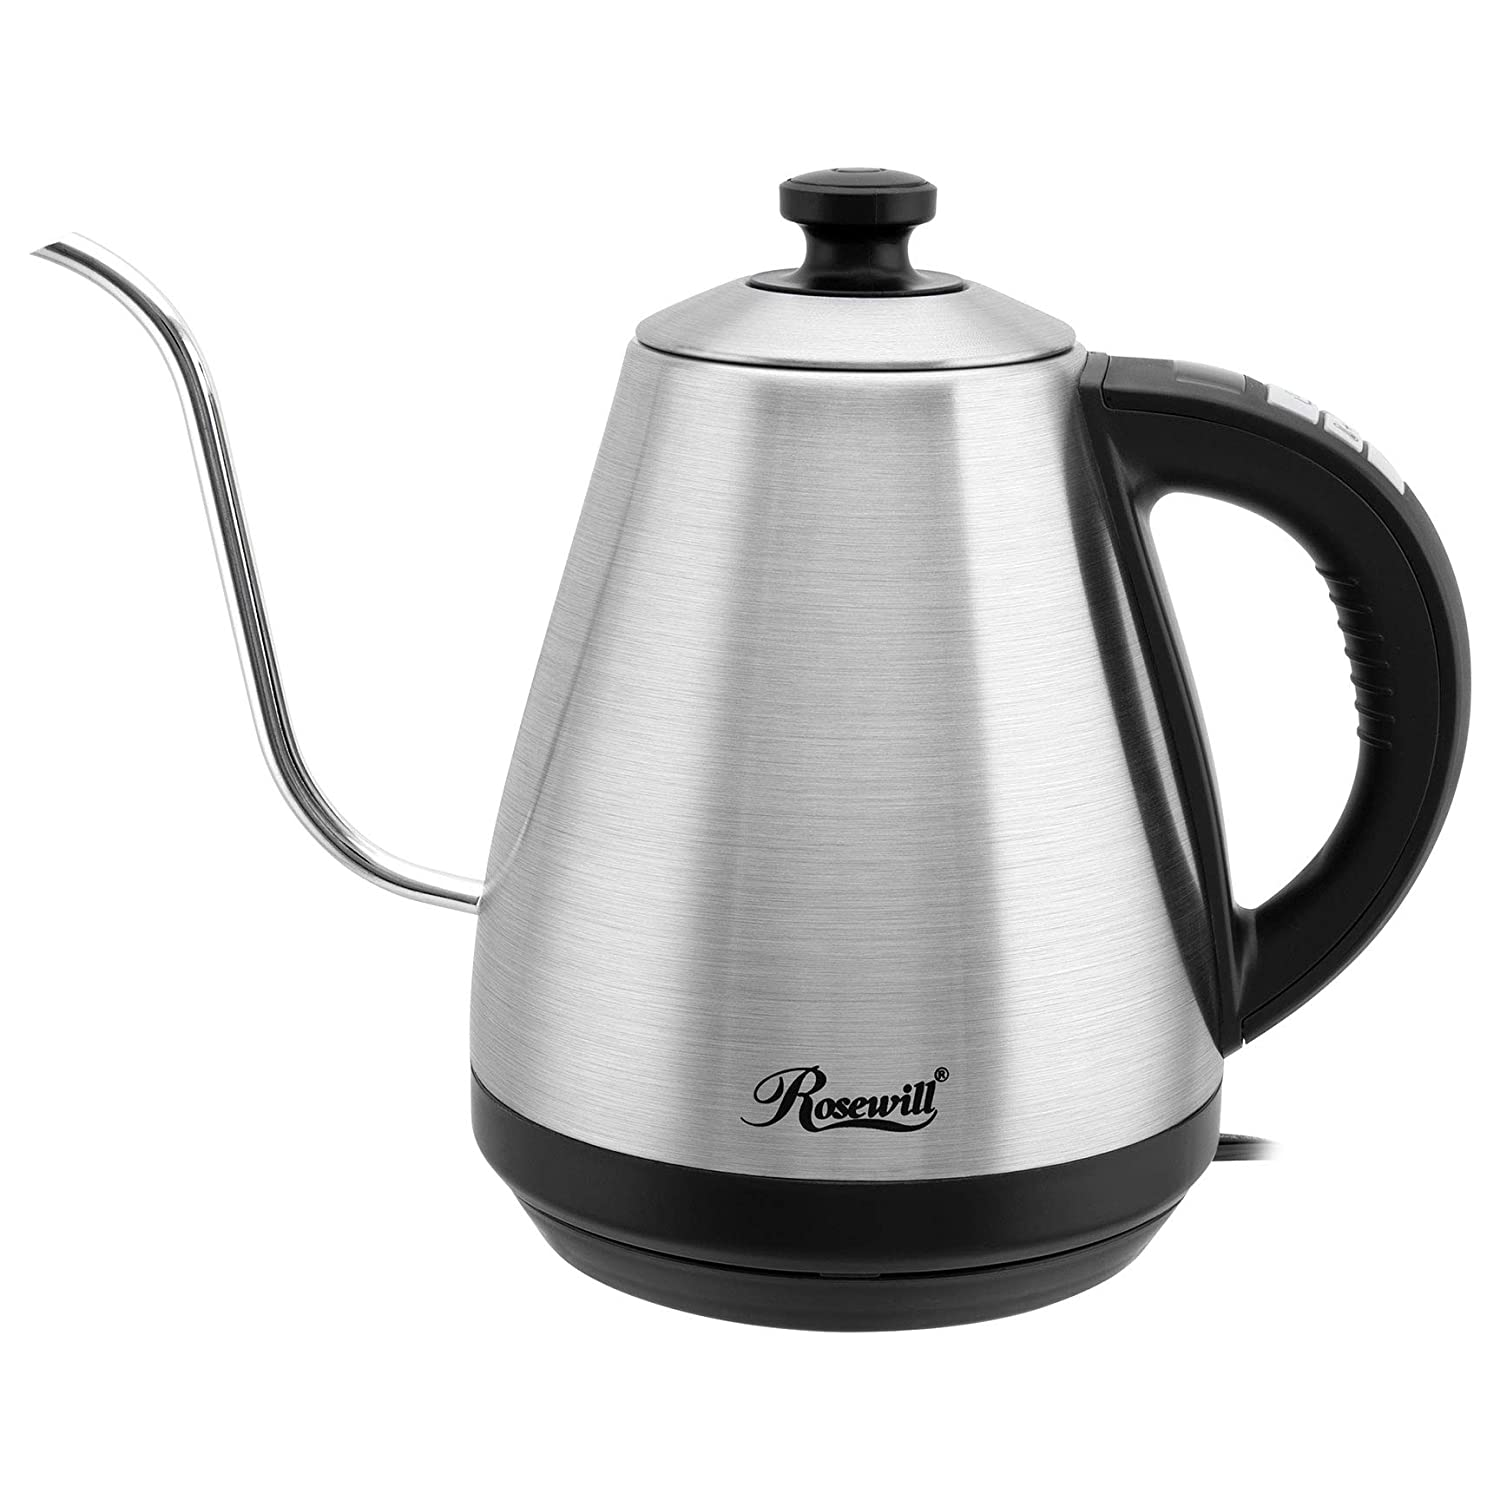 Rosewill Pour Over Coffee Kettle, Electric Gooseneck Kettle, Coffee Temperature Control with Variable Temperature Settings, Stainless Steel,RHKT-17002